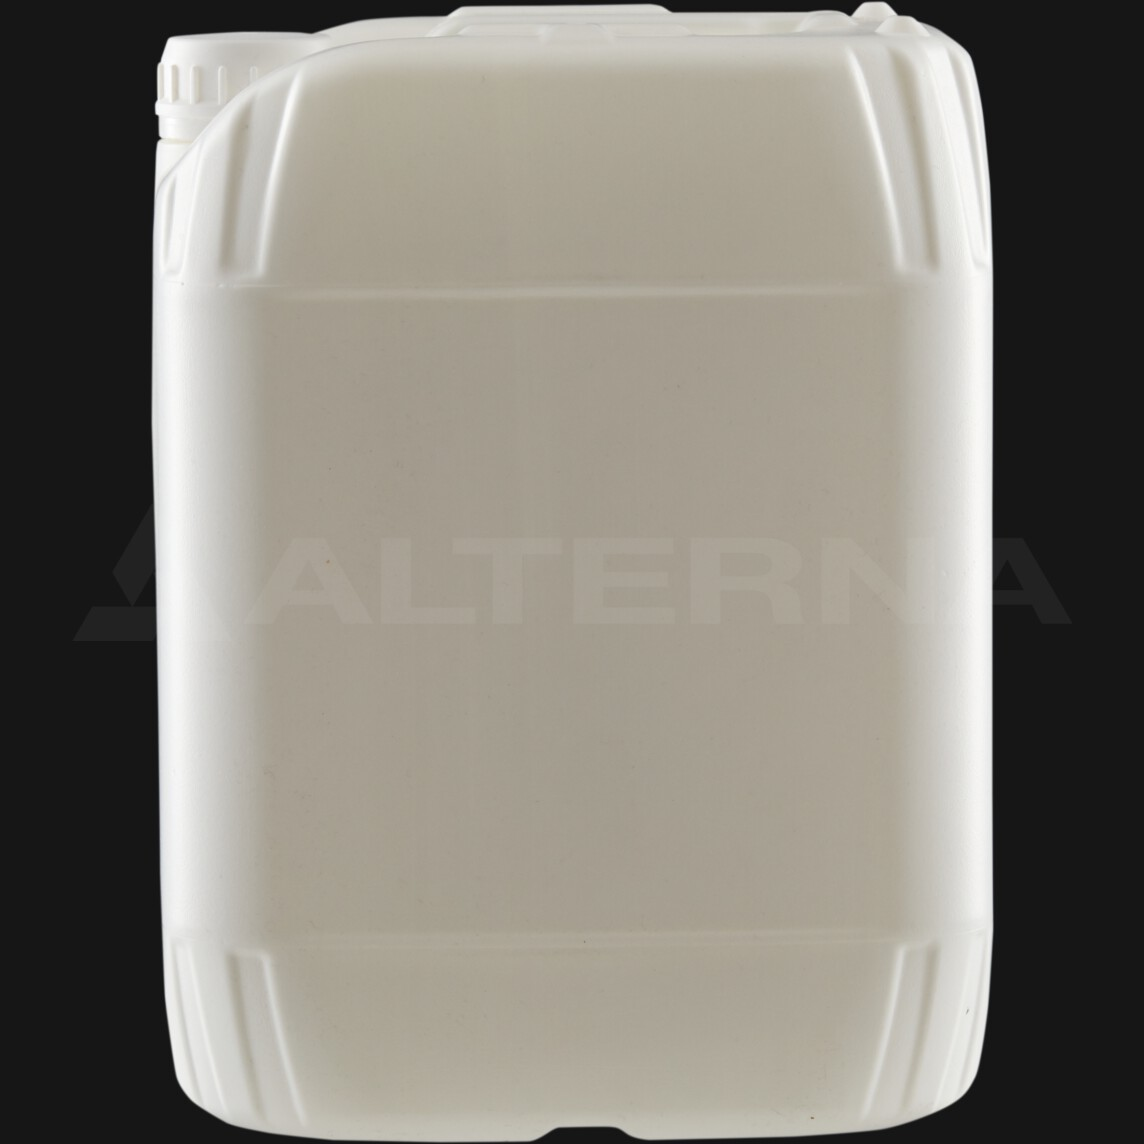 5 Liter HDPE Jerry Can with 38 mm Foam Seal Secure Cap